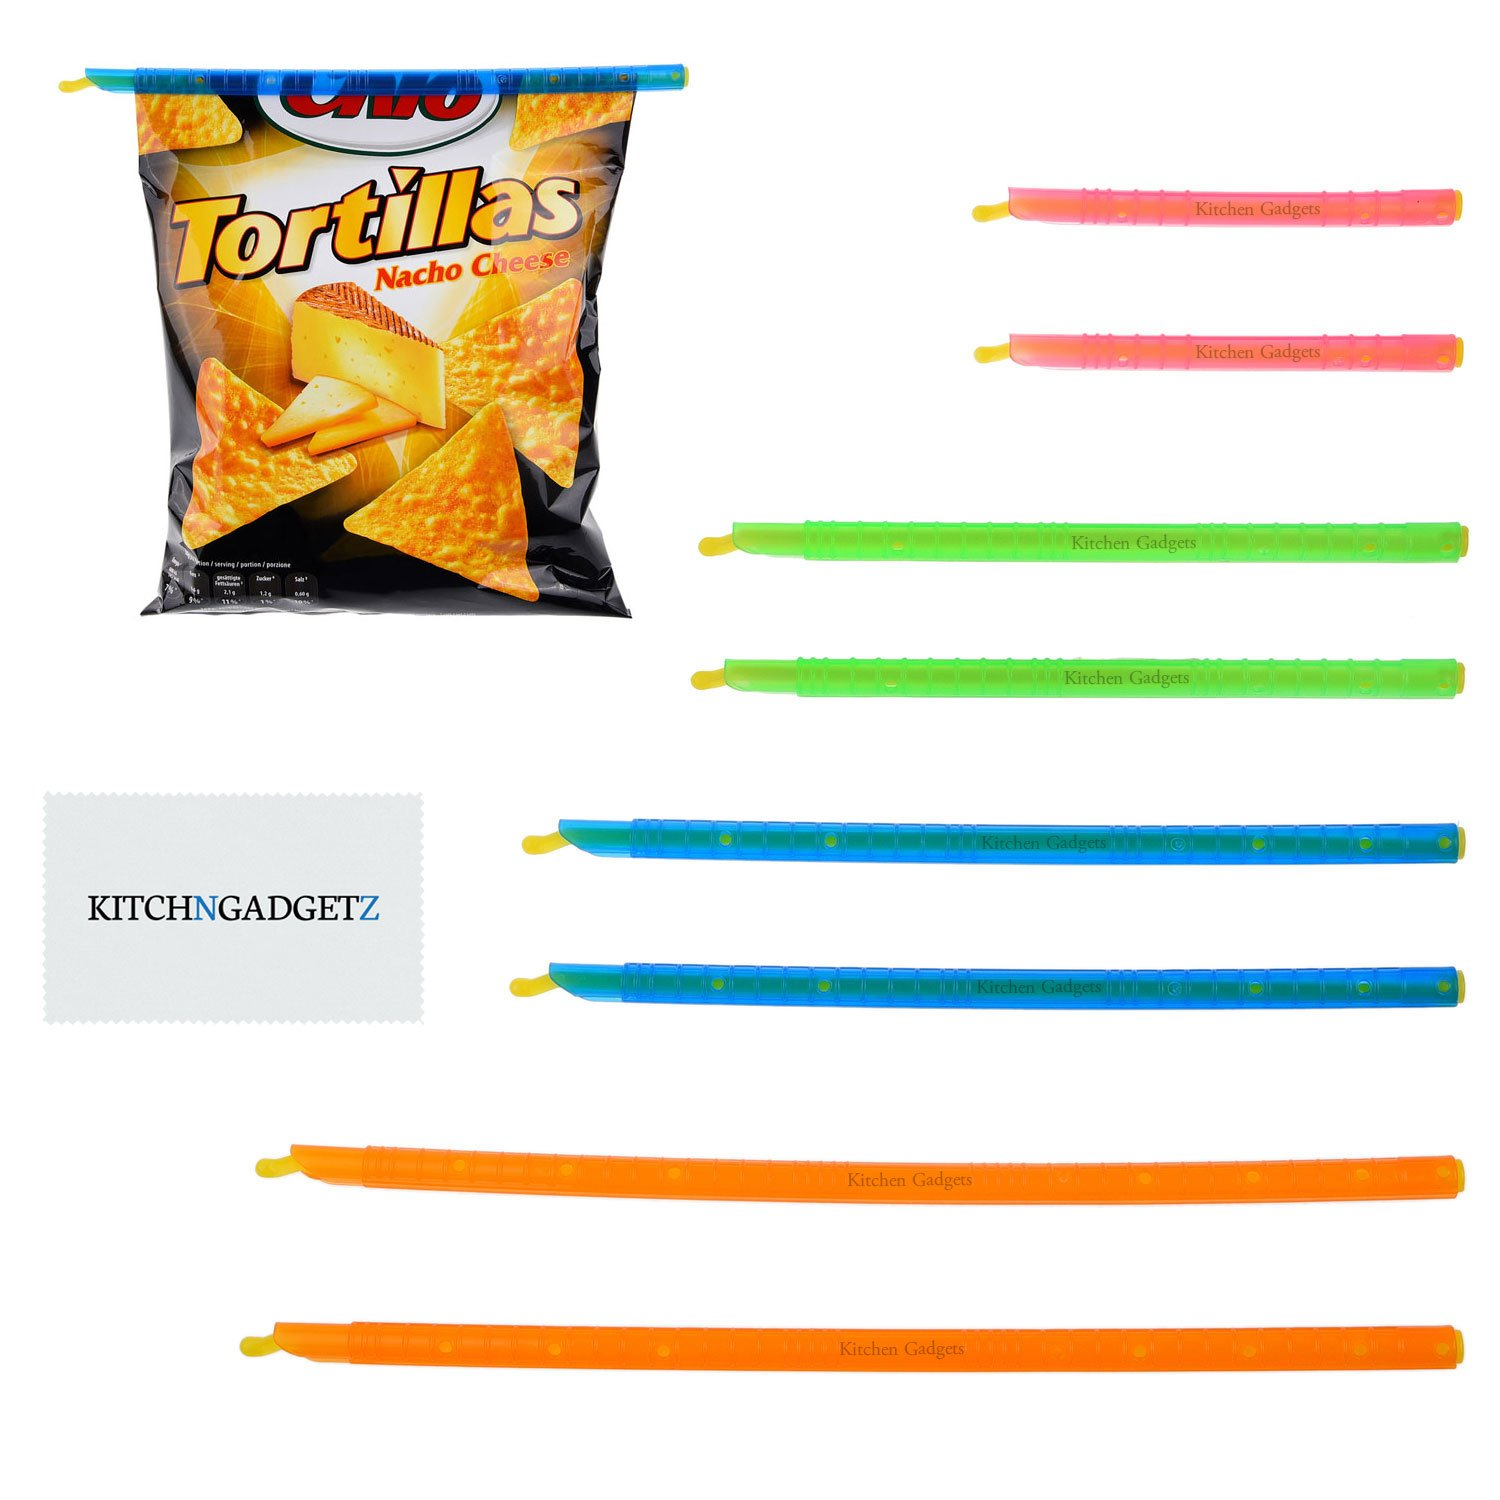 Chip Clips Plastic Bag Sealer Sticks by Kitchen Gadgets - 8 Pack, 4 sizes - Super Easy - Fold the Top of a Bag and Slide On a Bag Sealer Stick - Keeps Food Fresh - Thin, Compact, Reusable, Durable